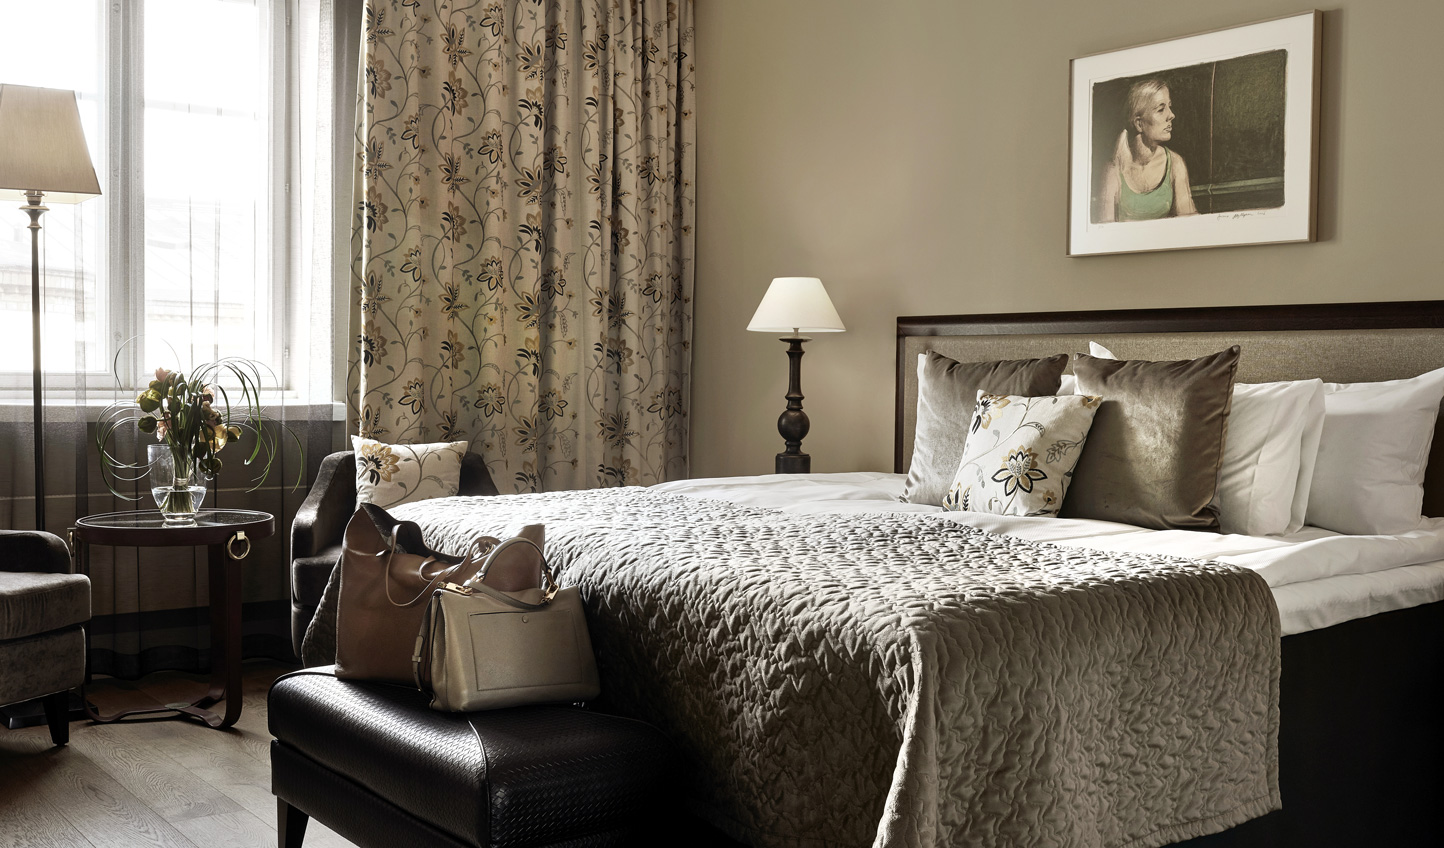 Neutral hues and sumptuous fabrics create a luxurious space to escape to